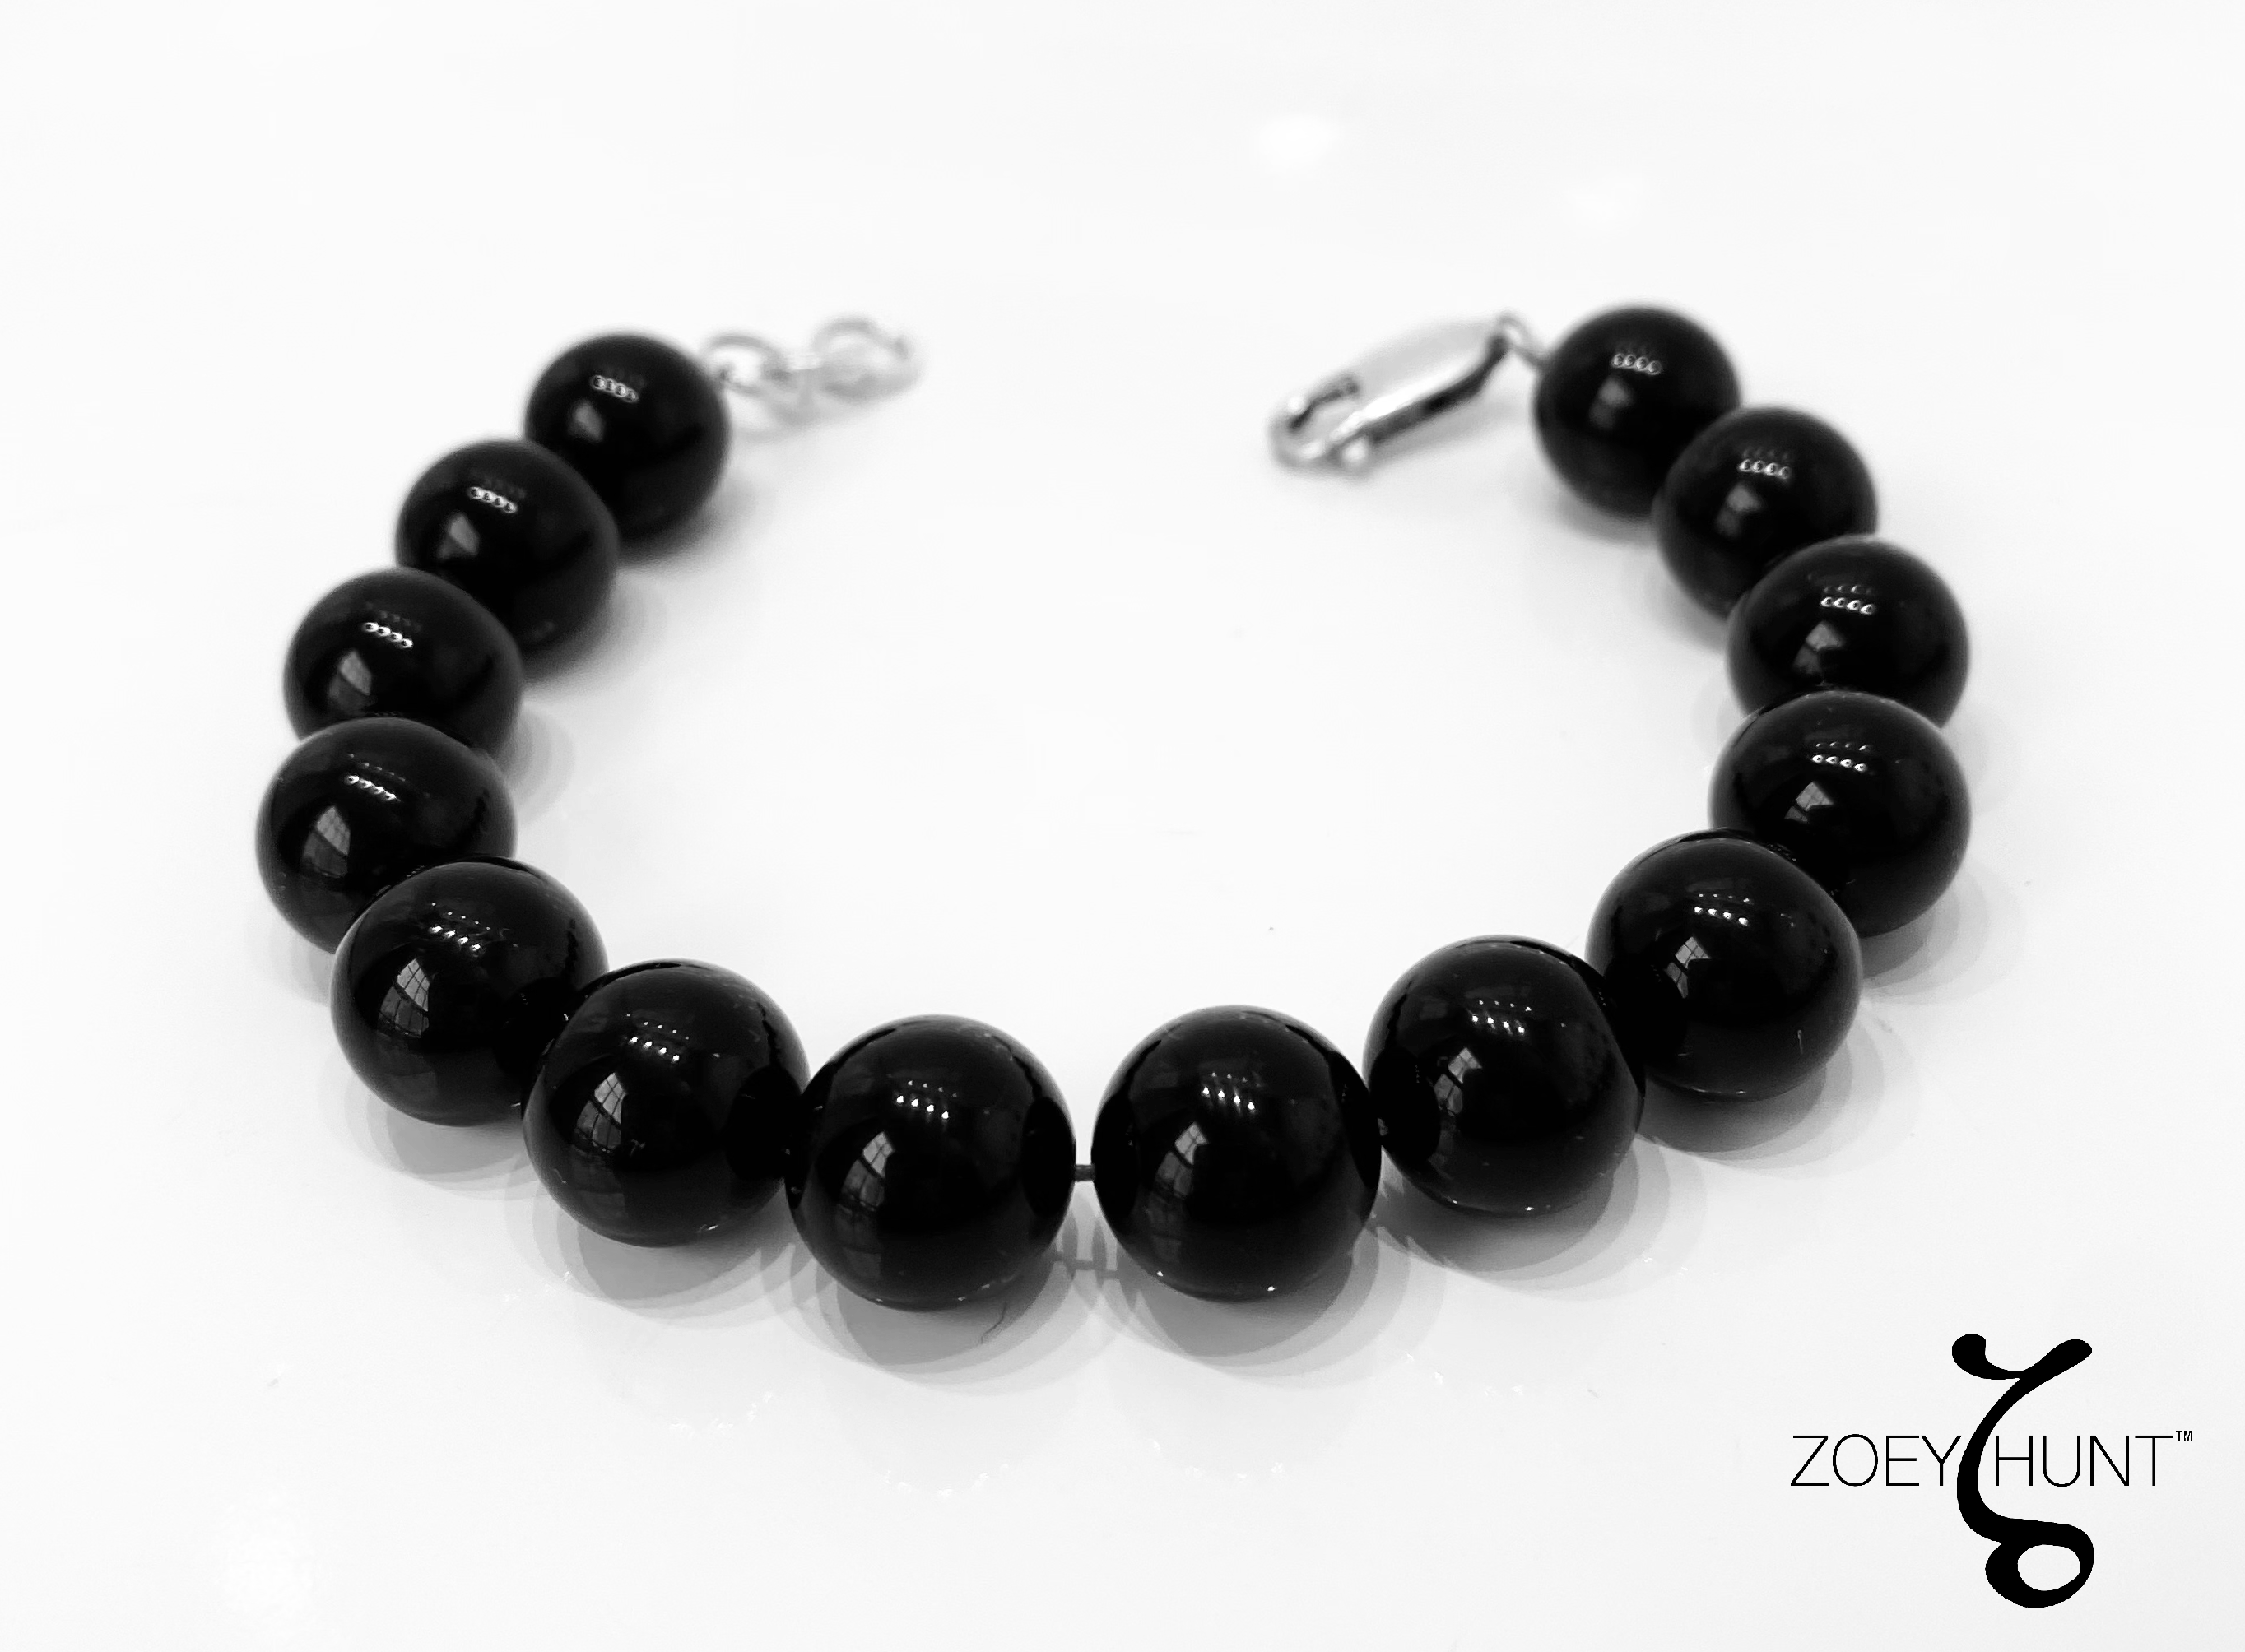 Black Onyx Bracelet - Onyx Meaning - Strength, Intuition, Protection, Self-Confidence & Balance